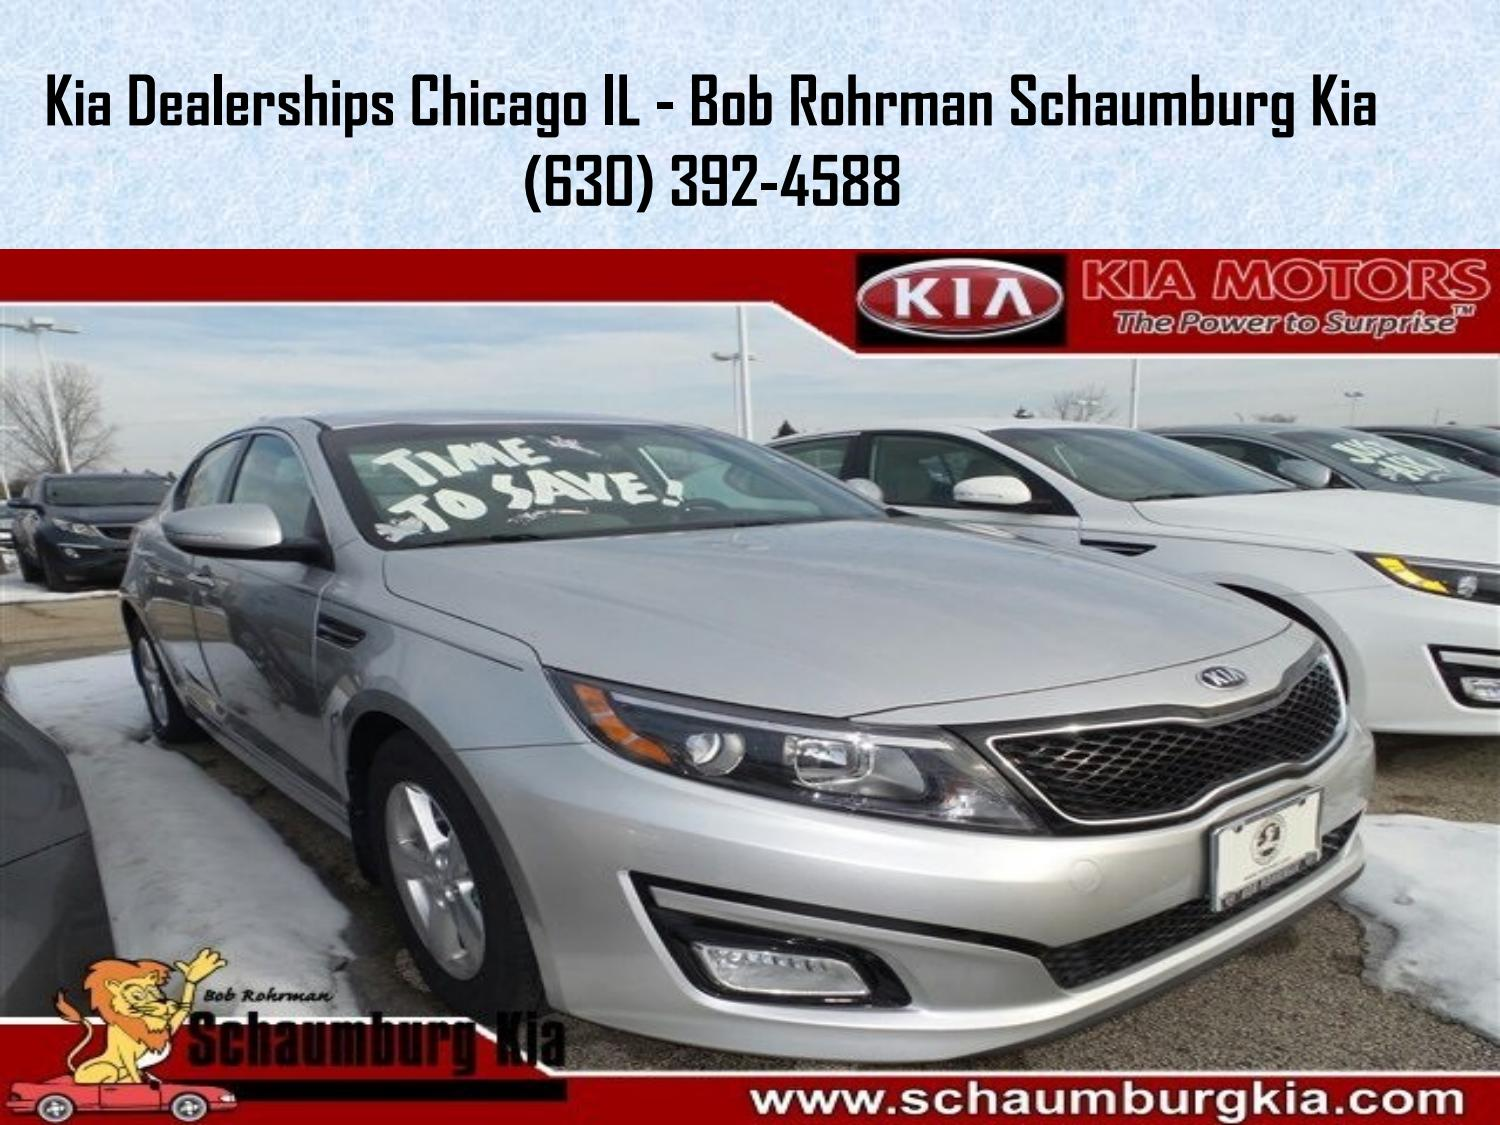 Exceptional Kia Chicago By Kia Dealers In Chicago   Issuu